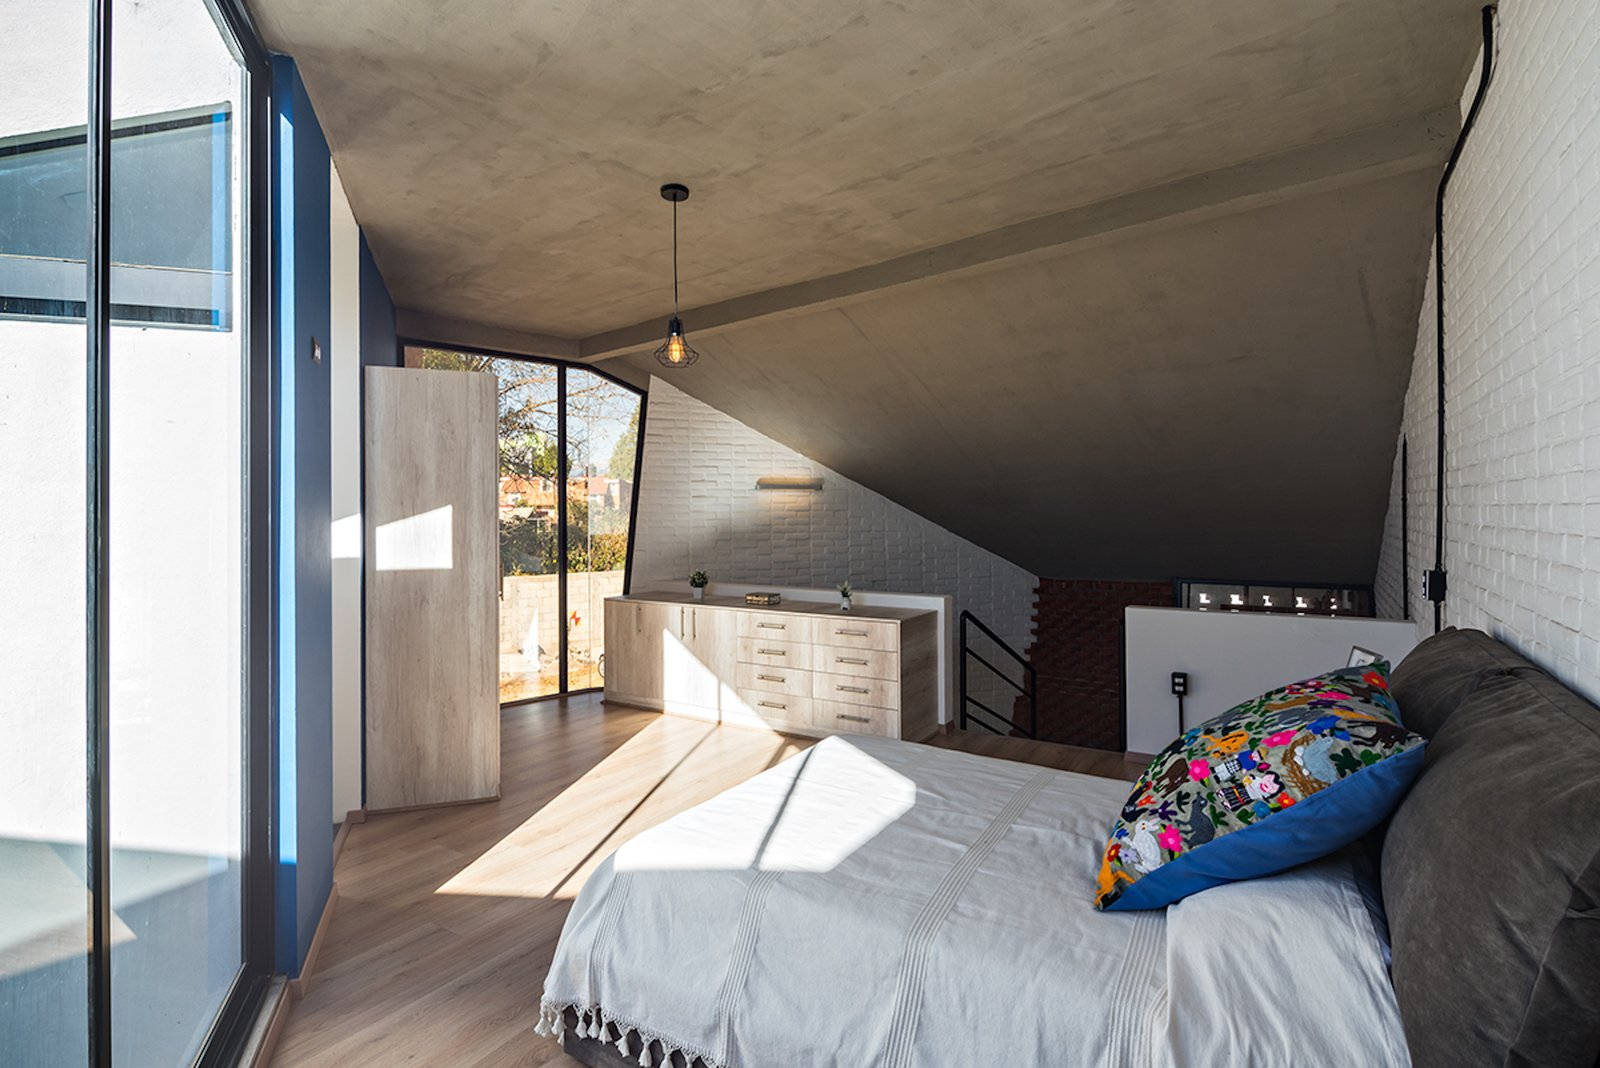 Bedroom, Storage, Pendant Lighting, Light Hardwood Floor, Wardrobe, and Bed A look at the master bedroom located on the mezzanine level.     Photo 8 of 14 in Extruded Red Bricks Create a Gorgeous, Geometric Mexican Home